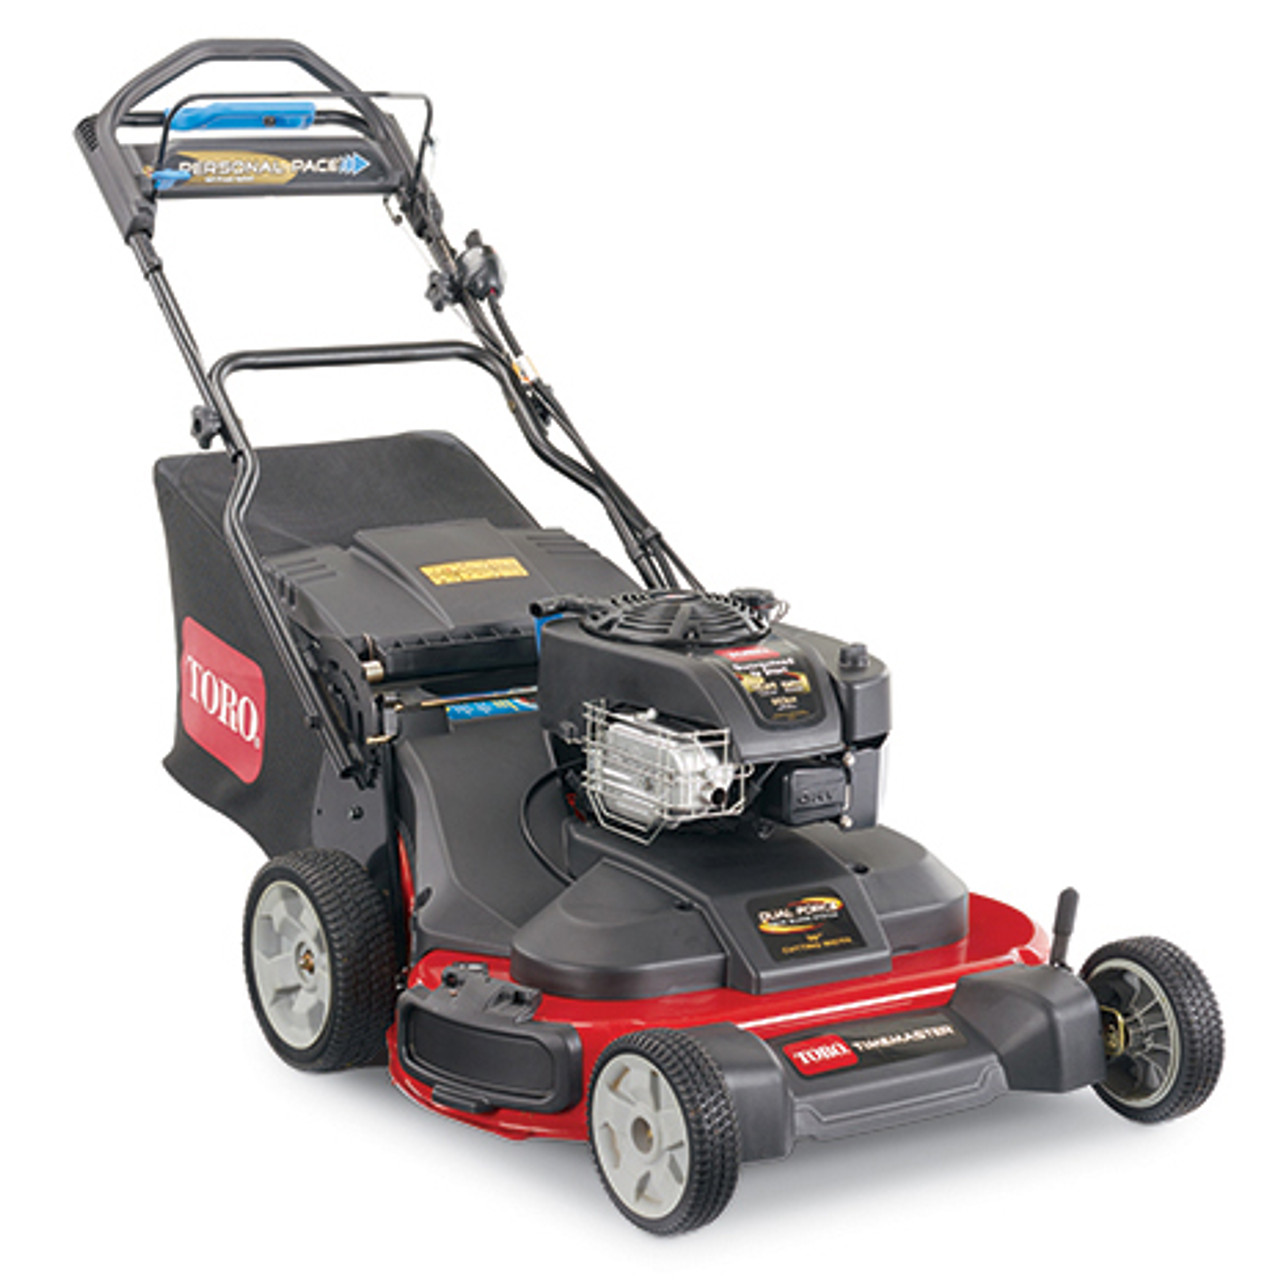 "Toro 21200 TimeMaster® 30"" Electric Start Self-Propelled Walk Behind Lawn Mower w/ 223cc OHV Briggs & Stratton Engine Image"